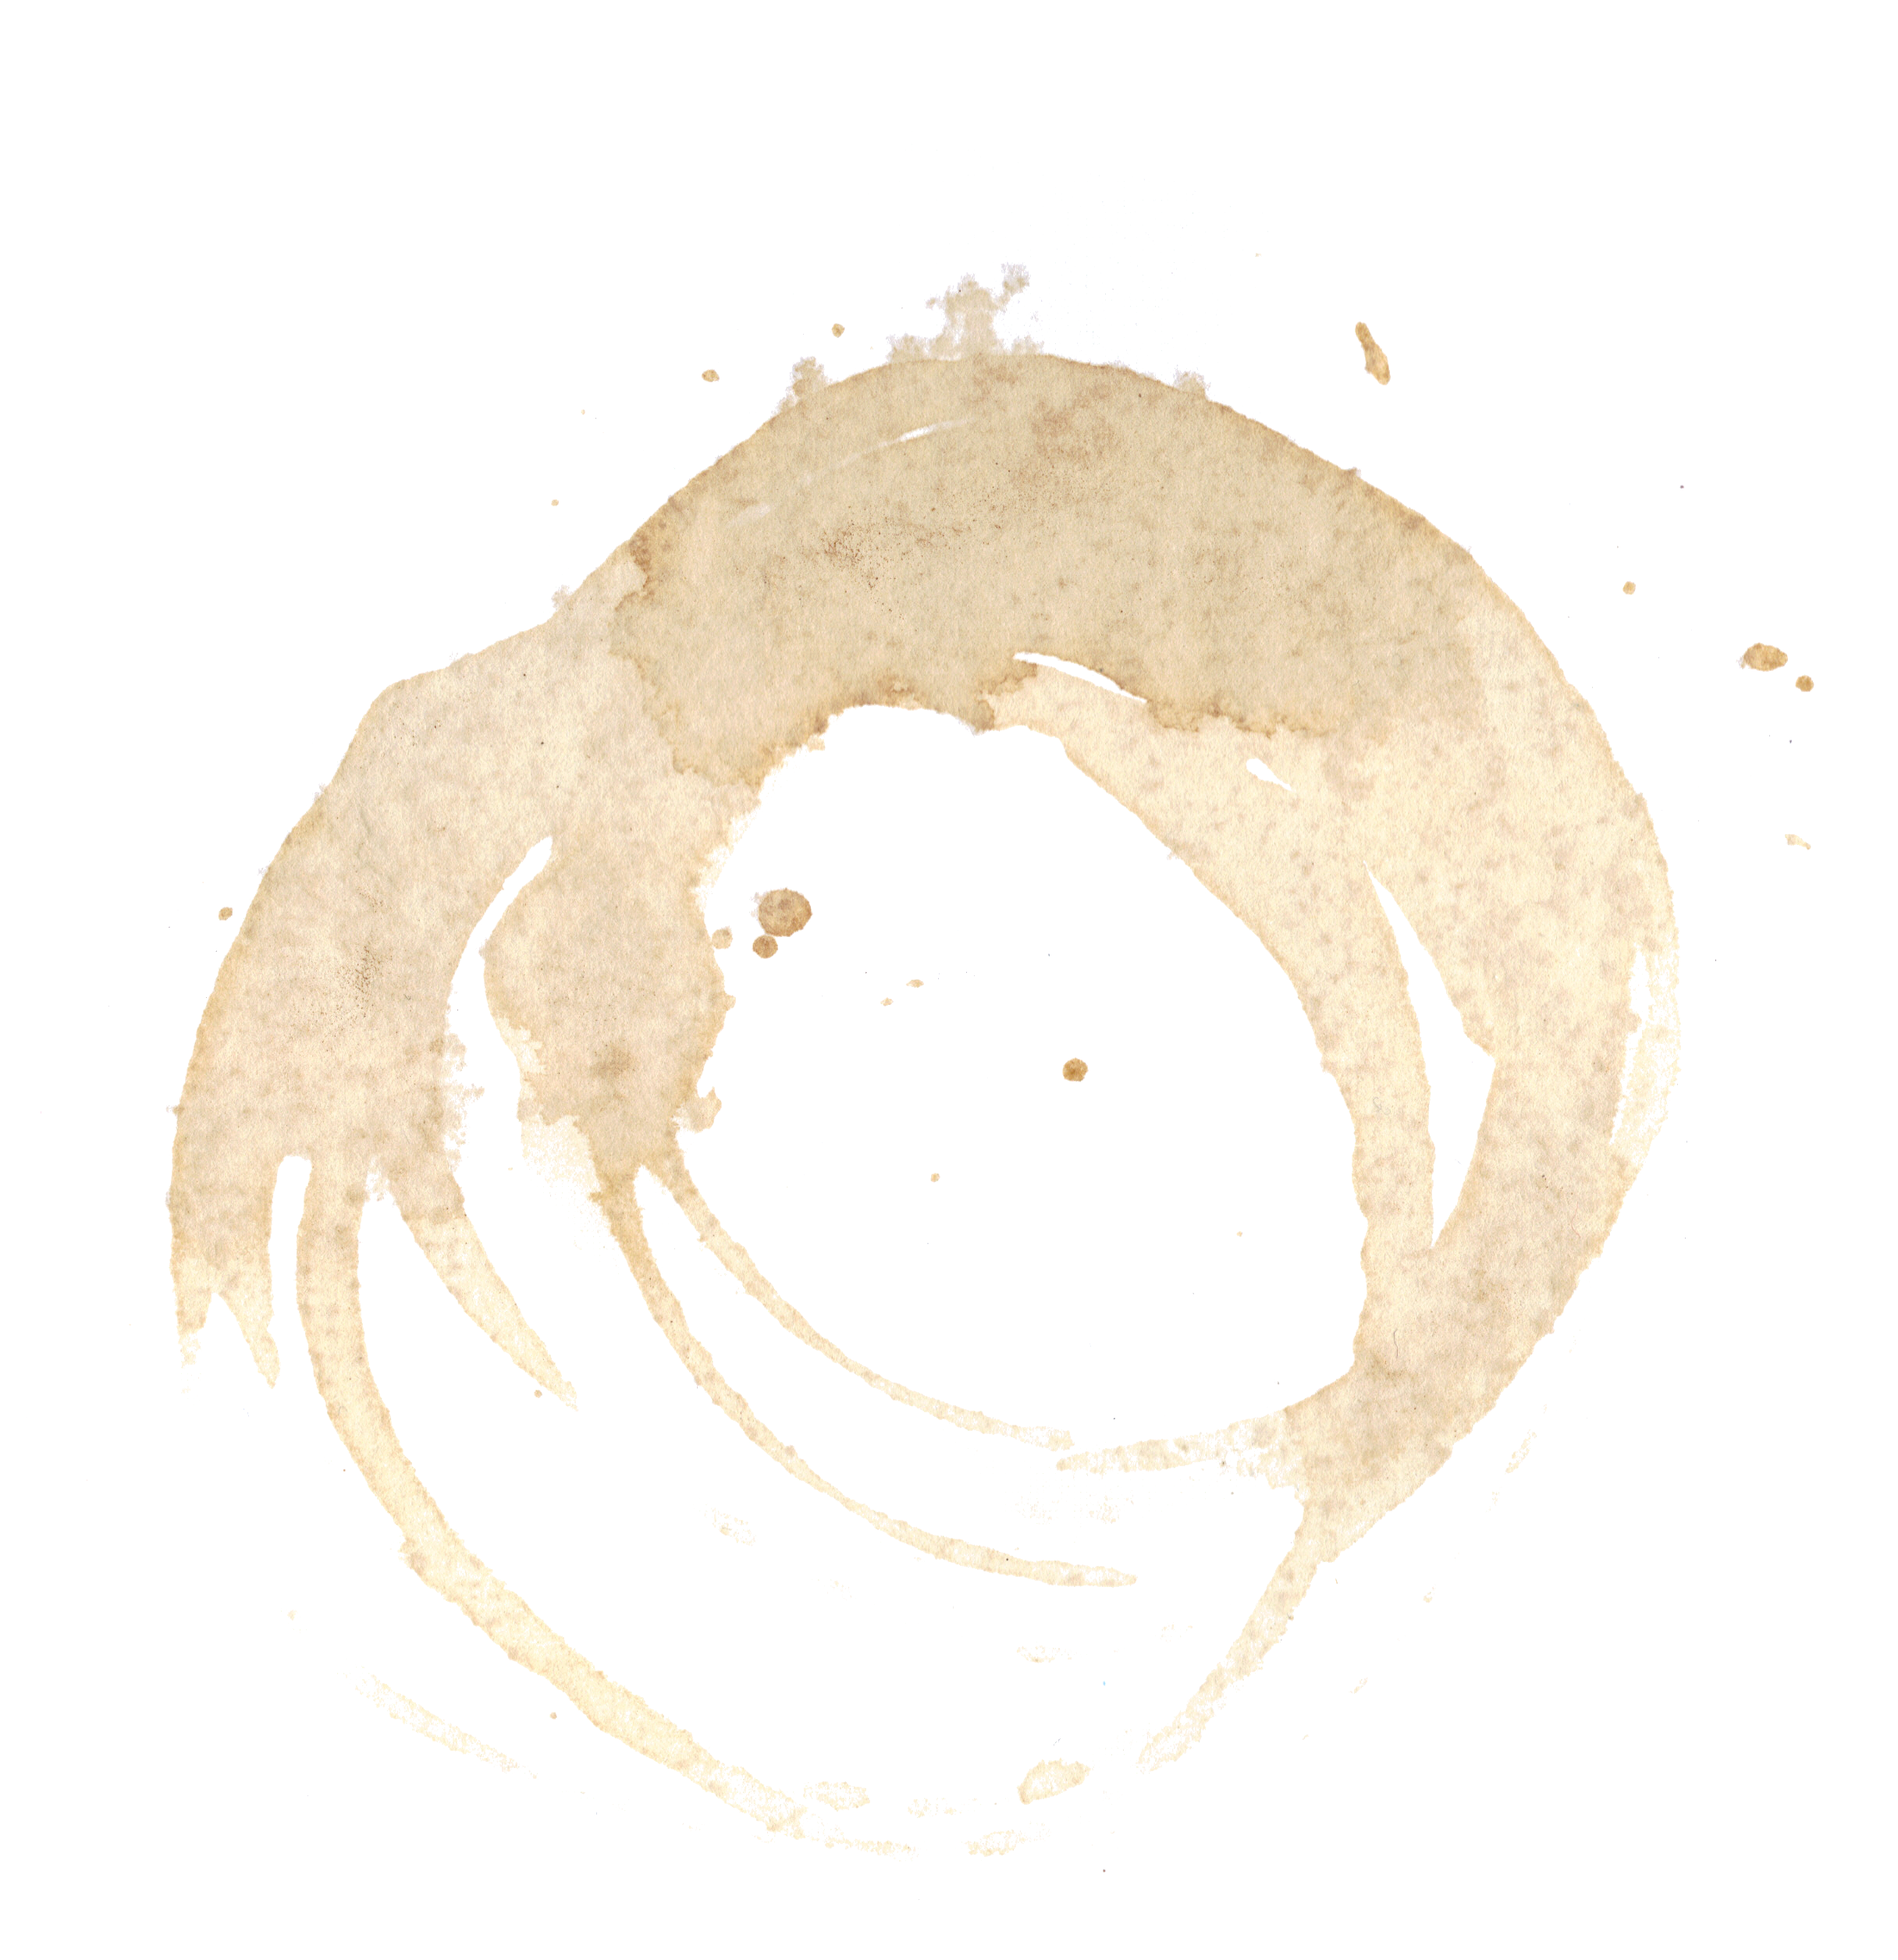 High-quality Coffee Stain Cliparts For Free! image #33674